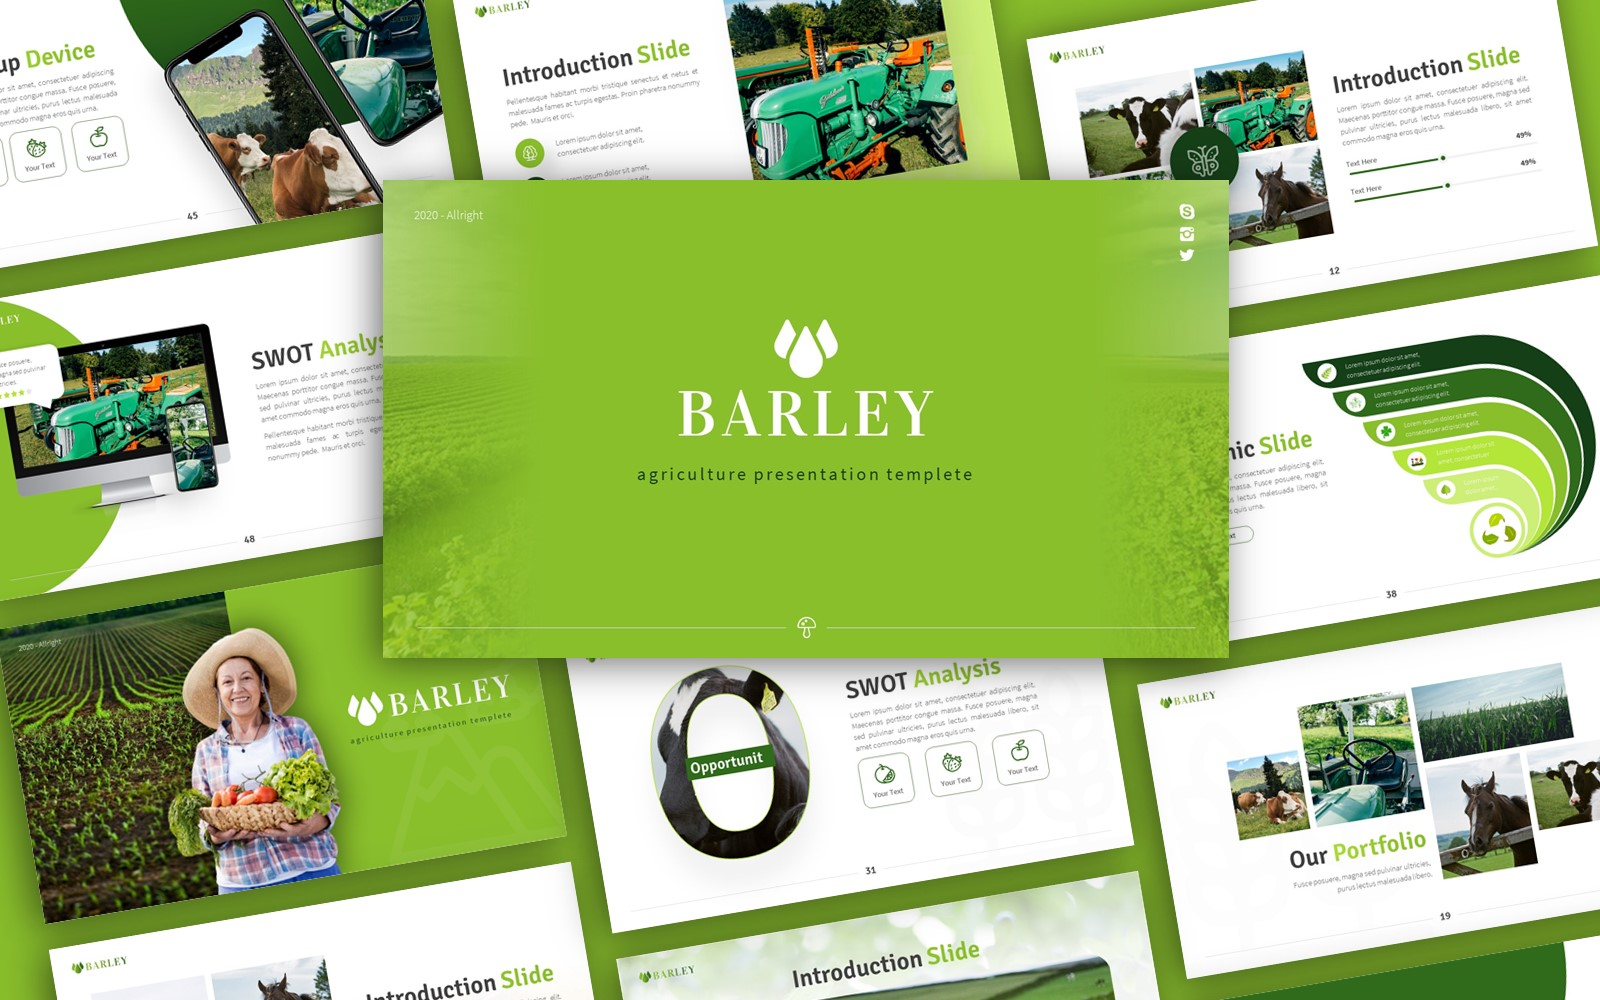 Barley Agriculture Presentation PowerPoint Template